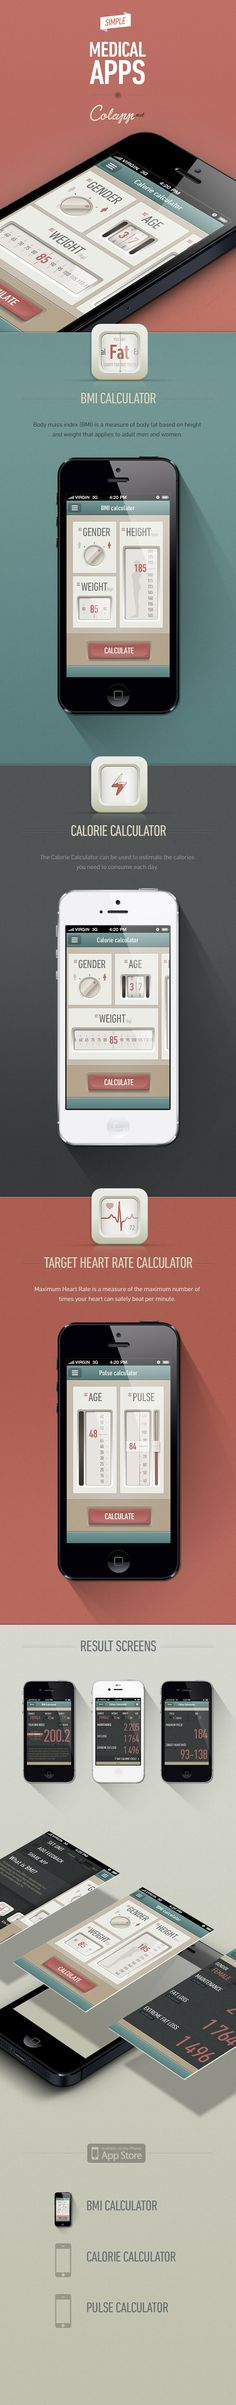 Medical apps by Gabor Jutasi + Daniel Kövesházi, via Behance.net